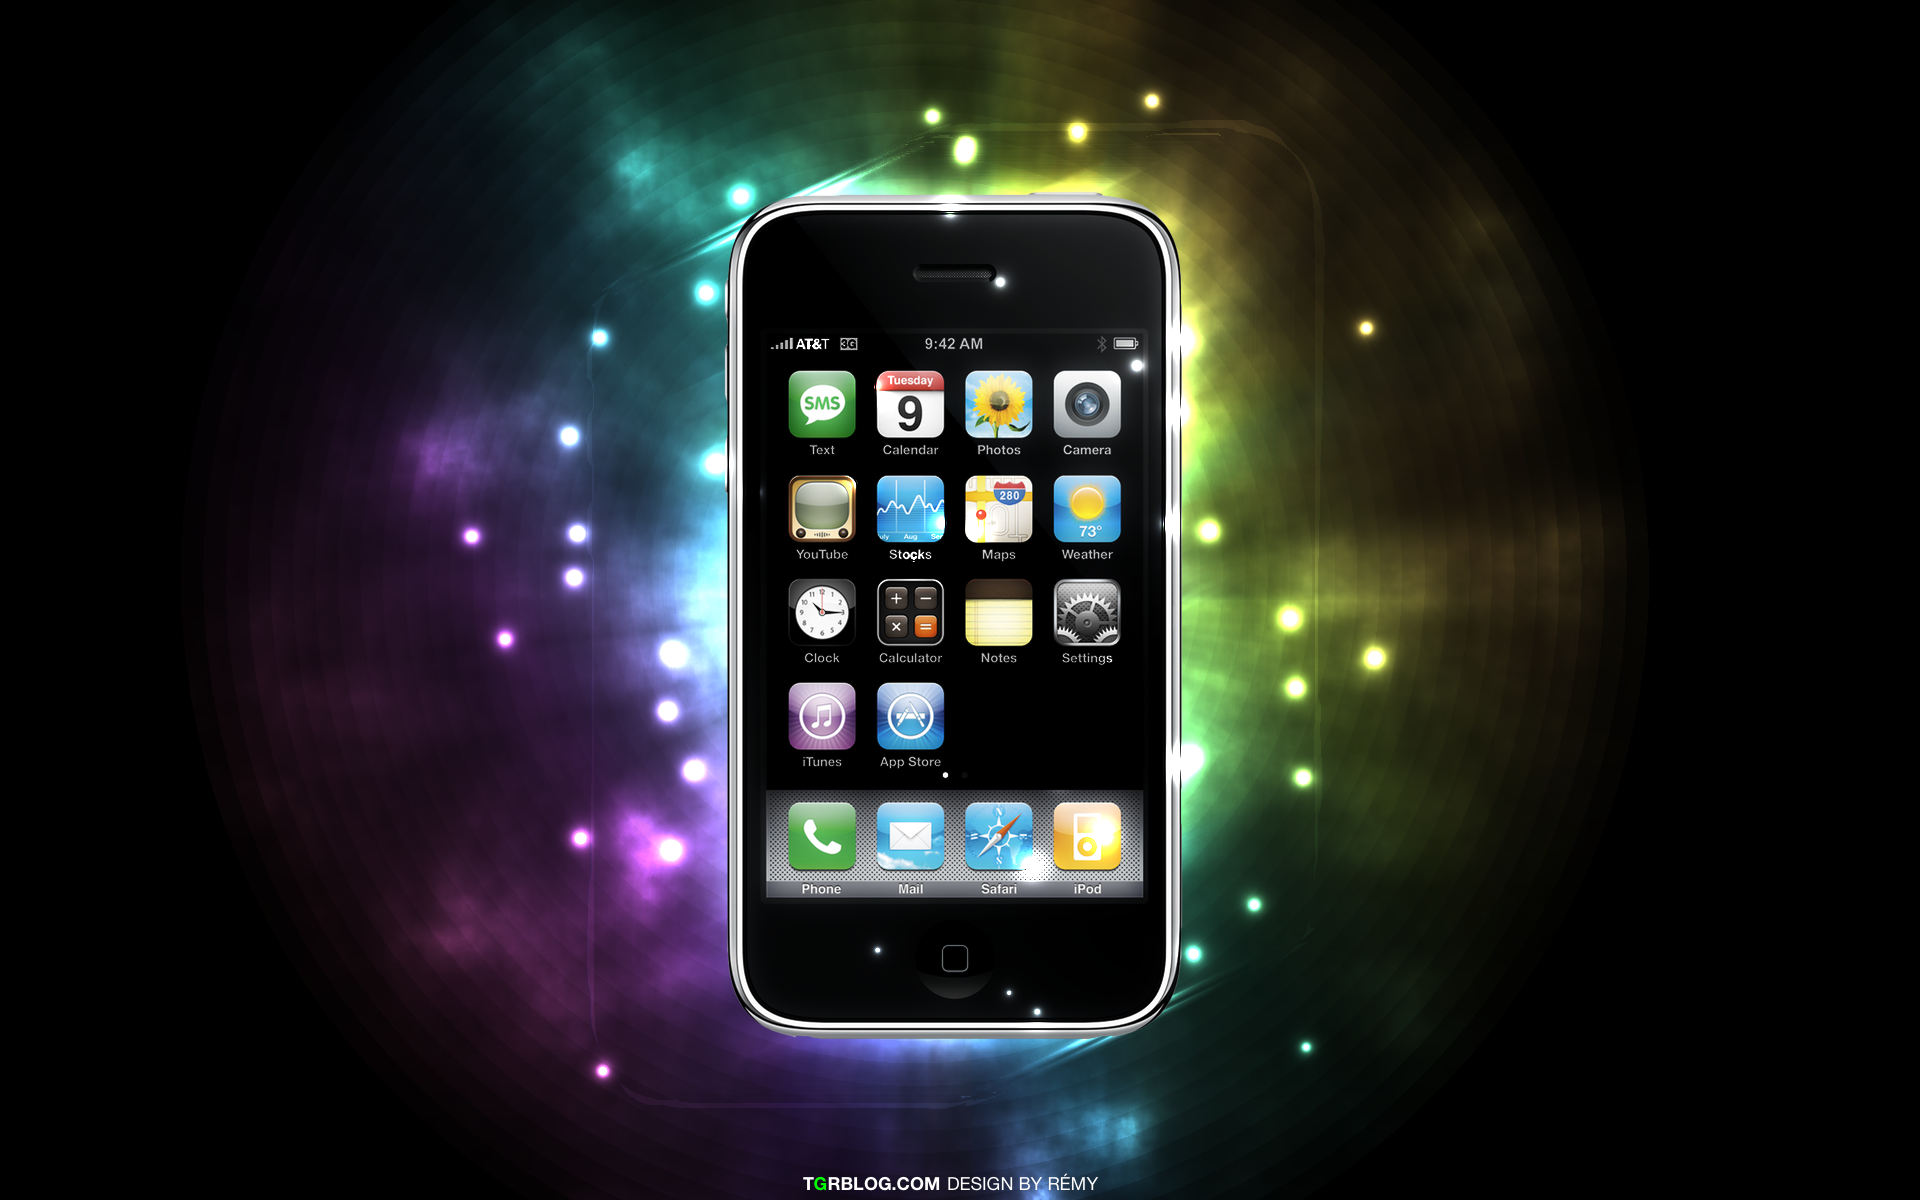 Apple Iphone Wallpapers: IPhone 3GS Wallpaper